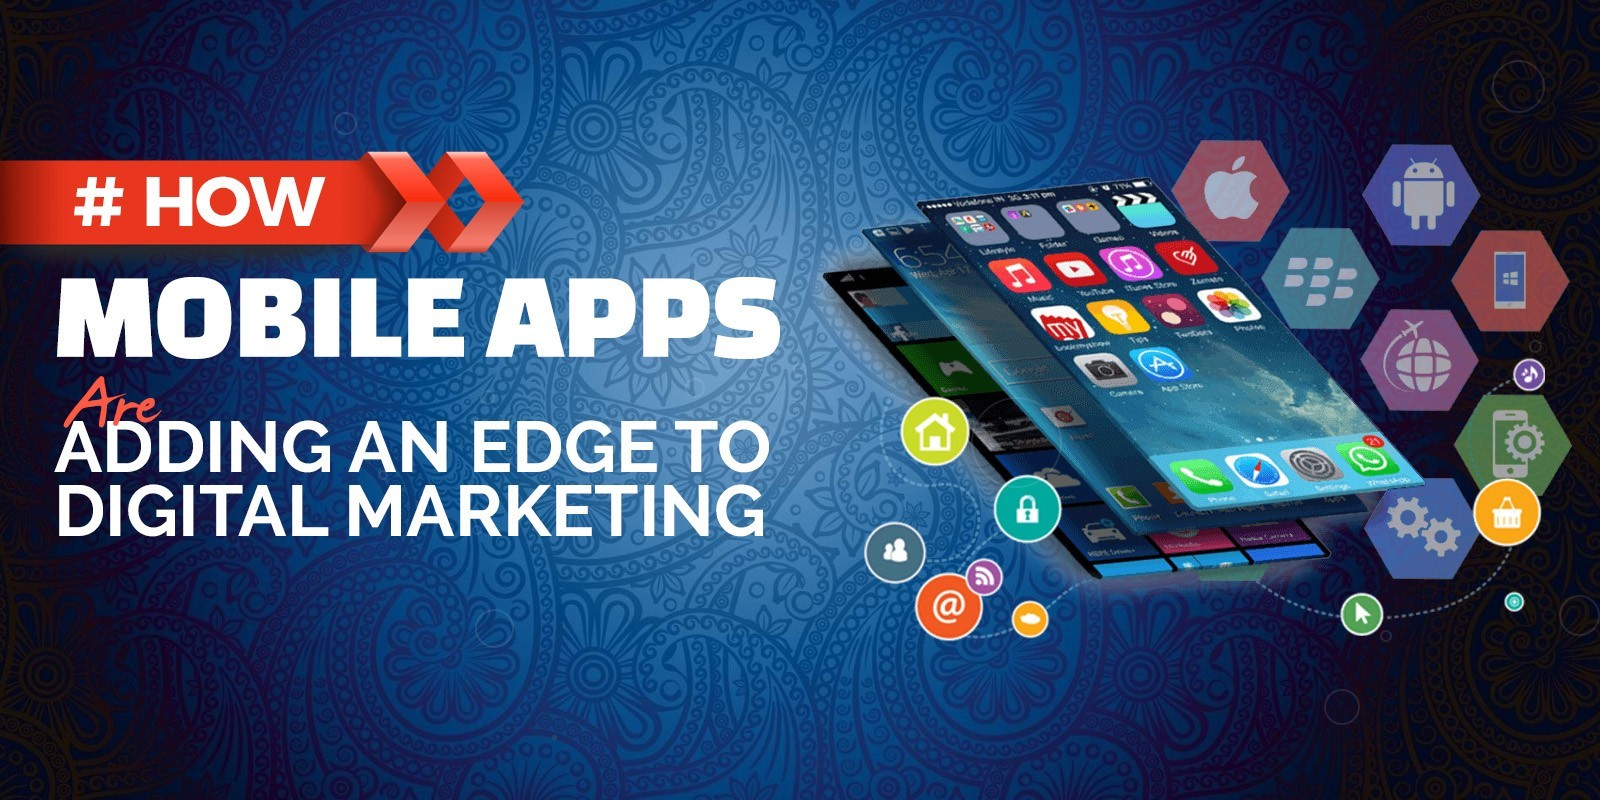 How Mobile Apps are Adding an Edge to Digital Marketing